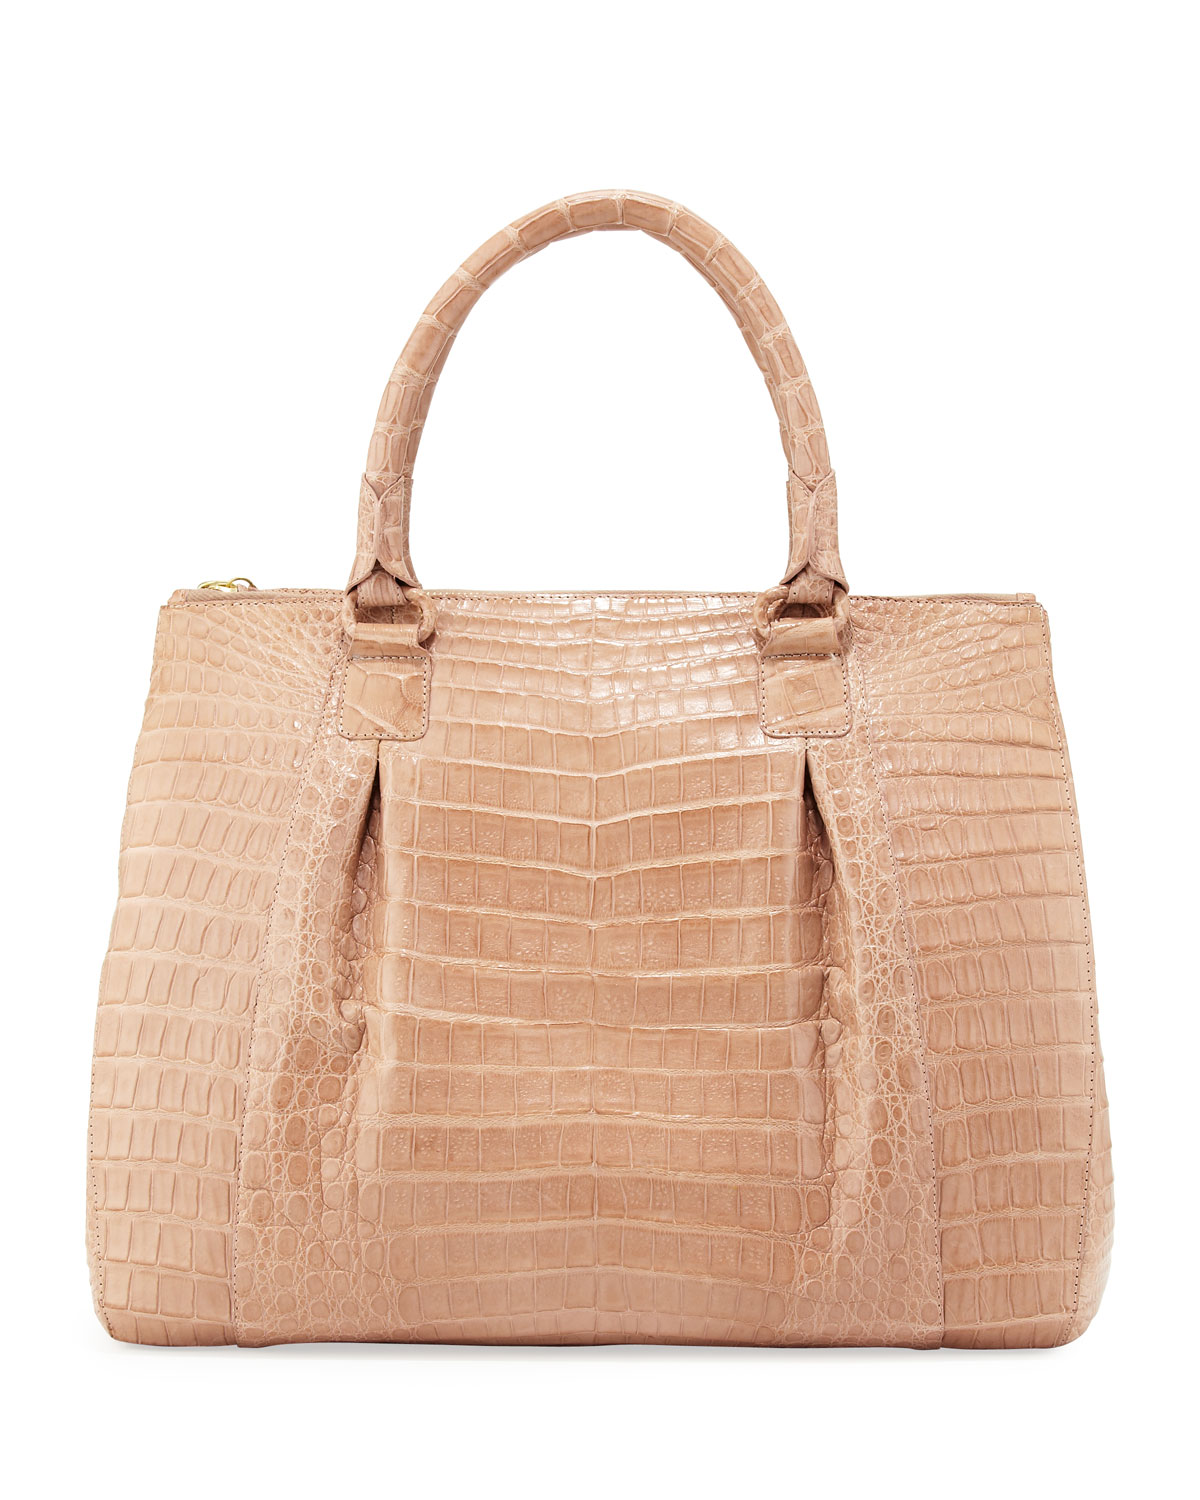 nancy gonzalez large doublezip crocodile tote bag beige in